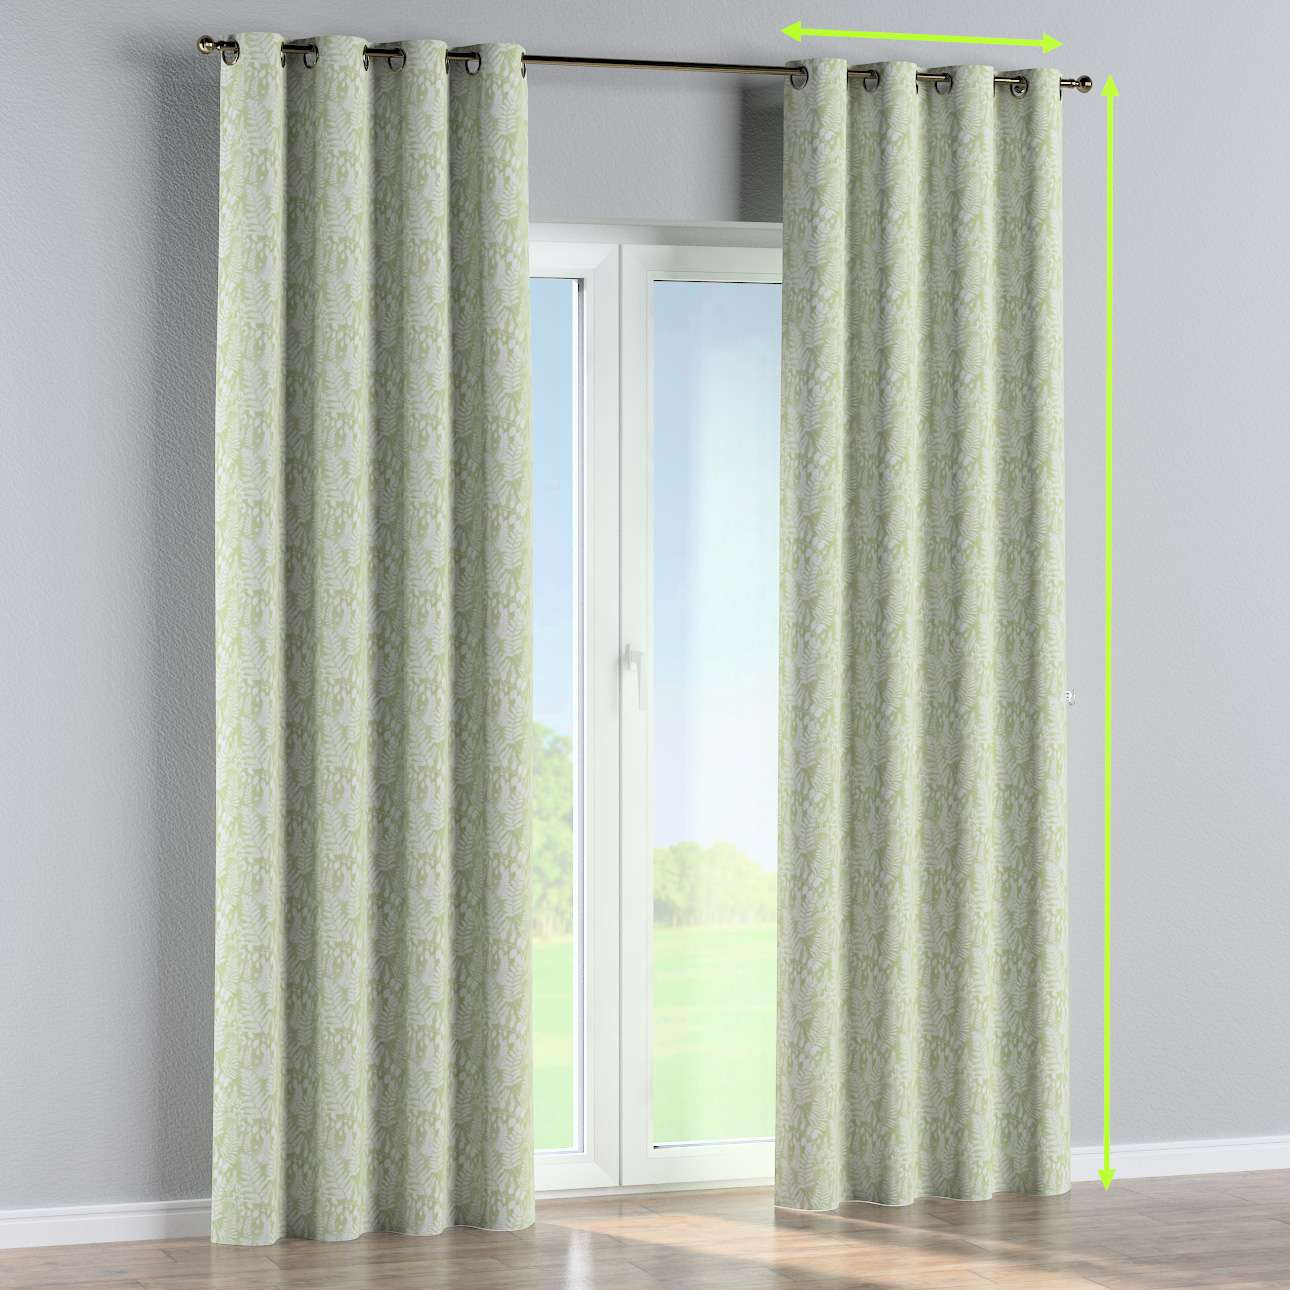 Eyelet curtain in collection Pastel Forest, fabric: 142-49